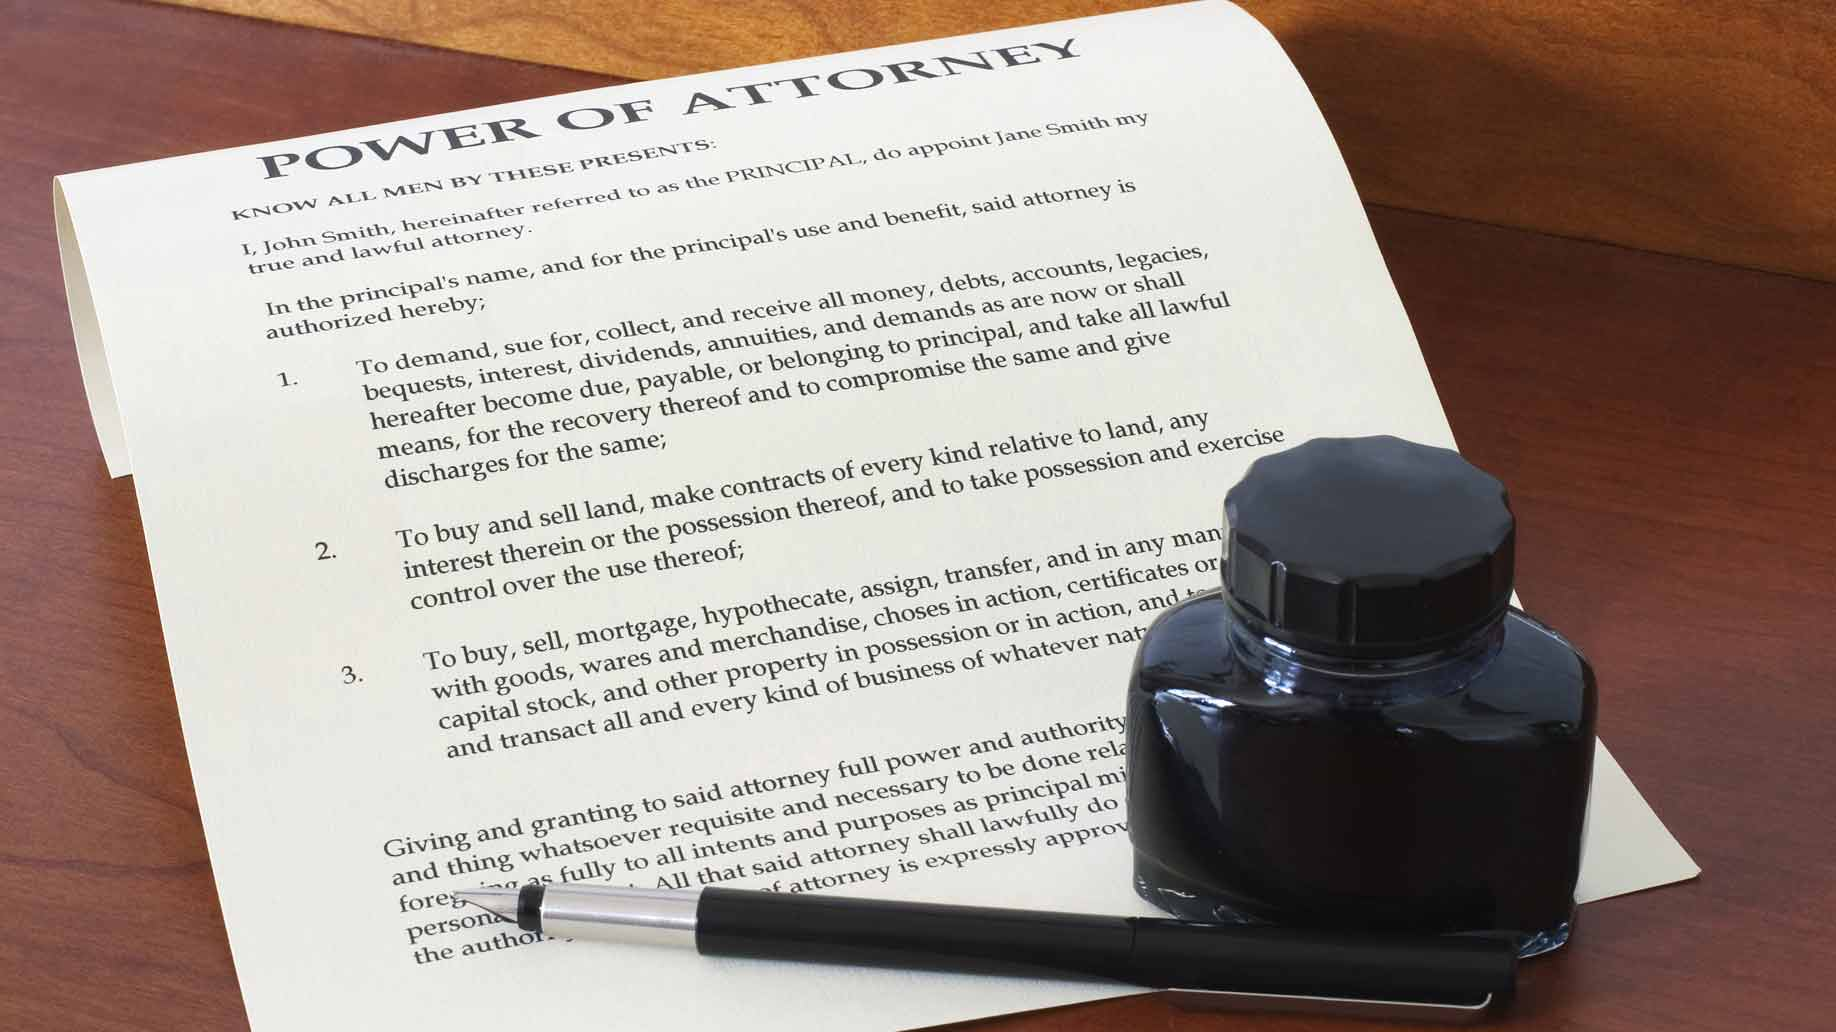 Things To Know About Powers of Attorney